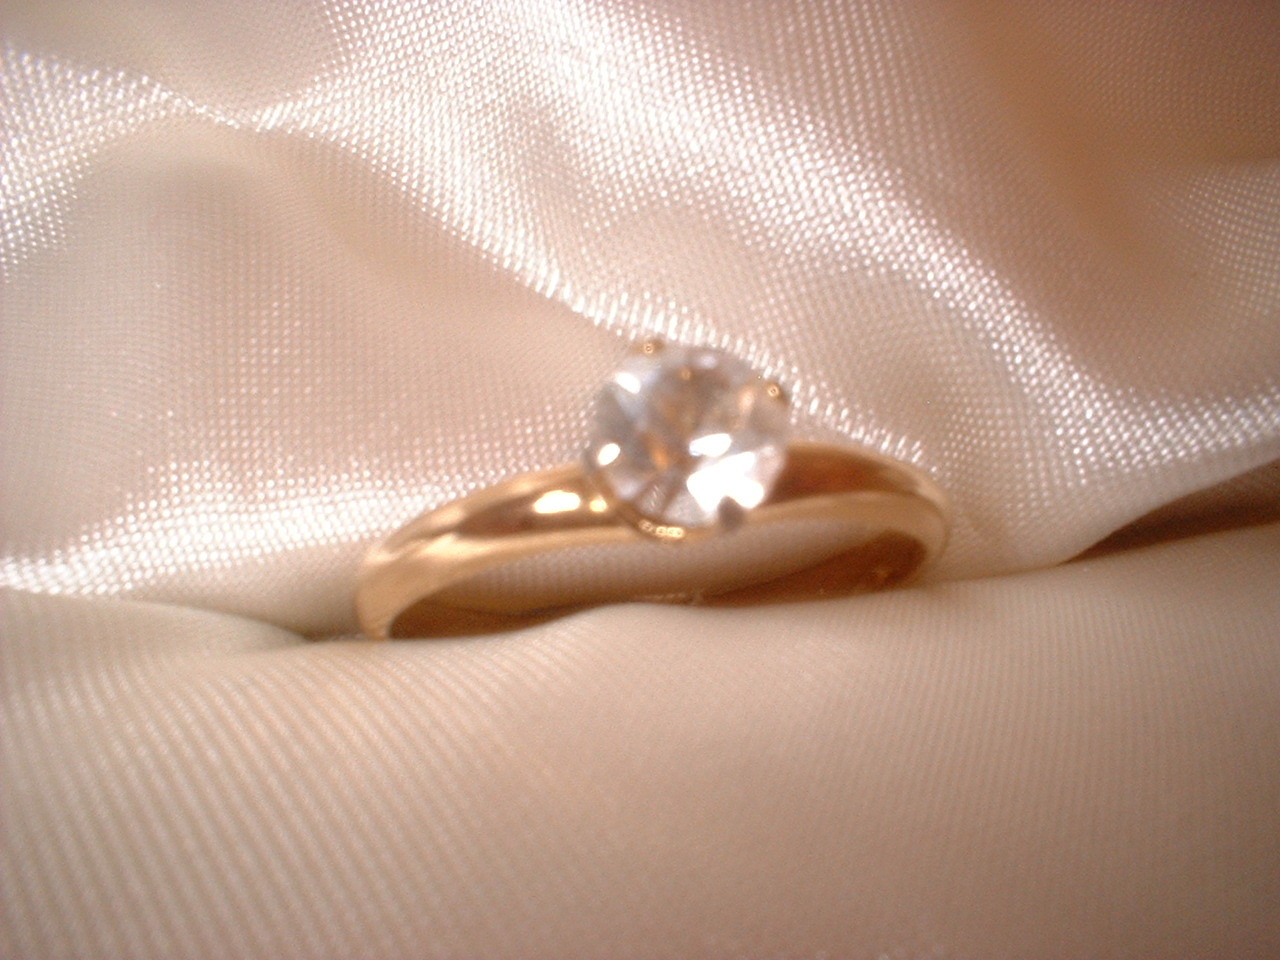 Round Solitaire Crystal Ring Size 9 Bargain Bin Under $10.00